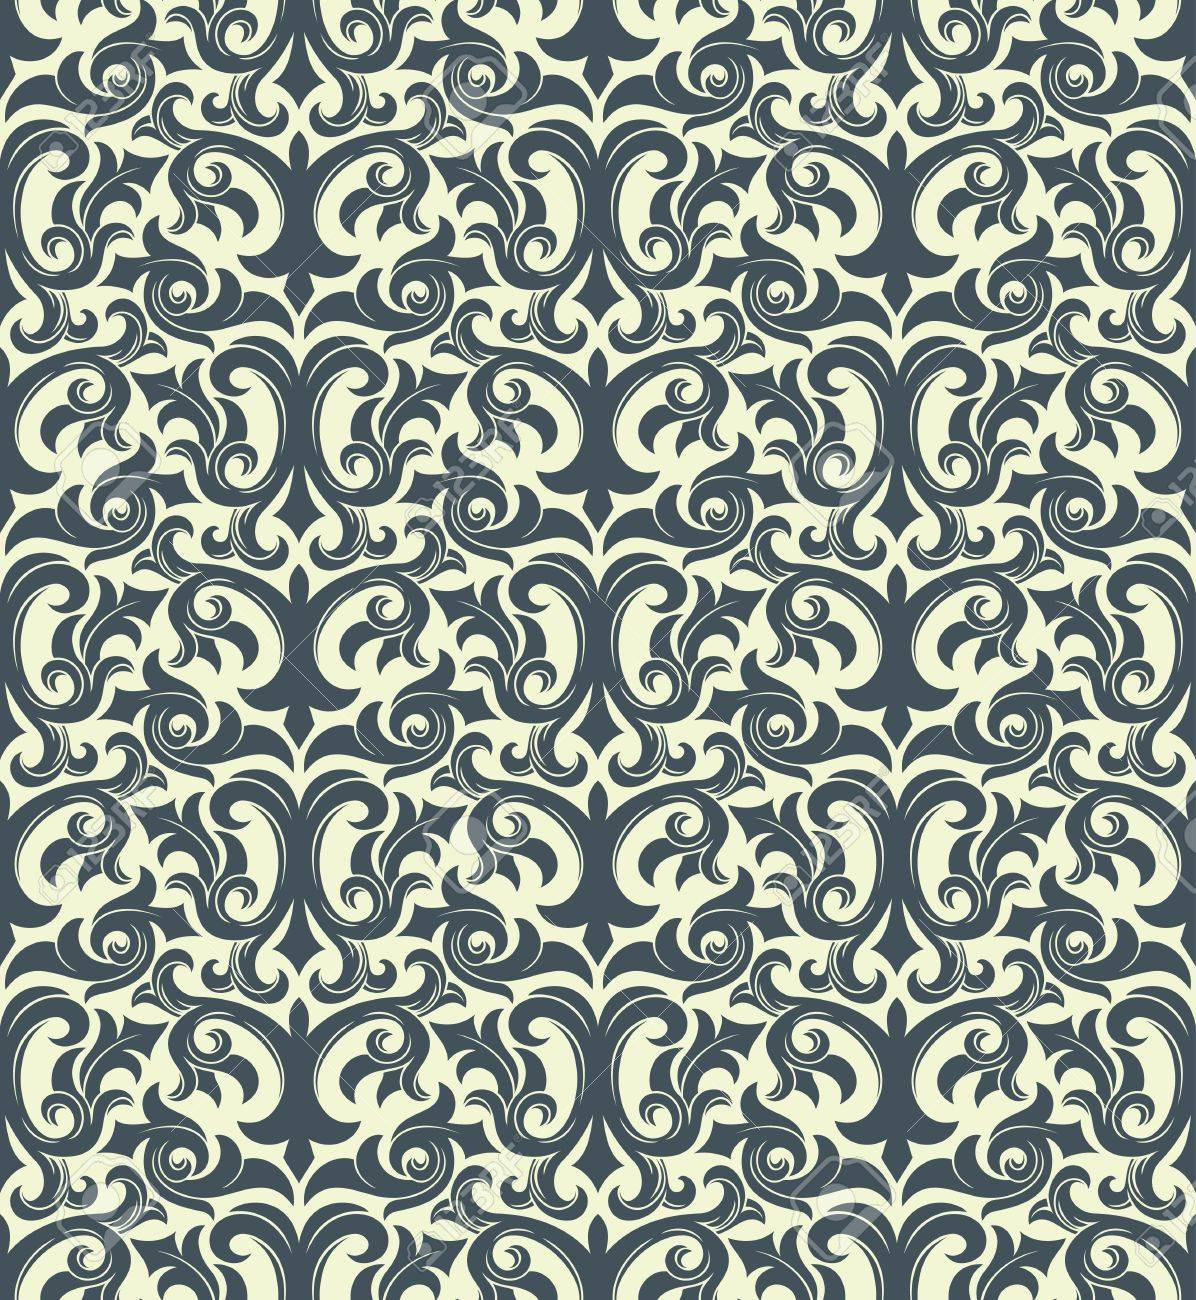 Seamless background from a floral ornament, Fashionable modern wallpaper or textile Stock Vector - 6551190